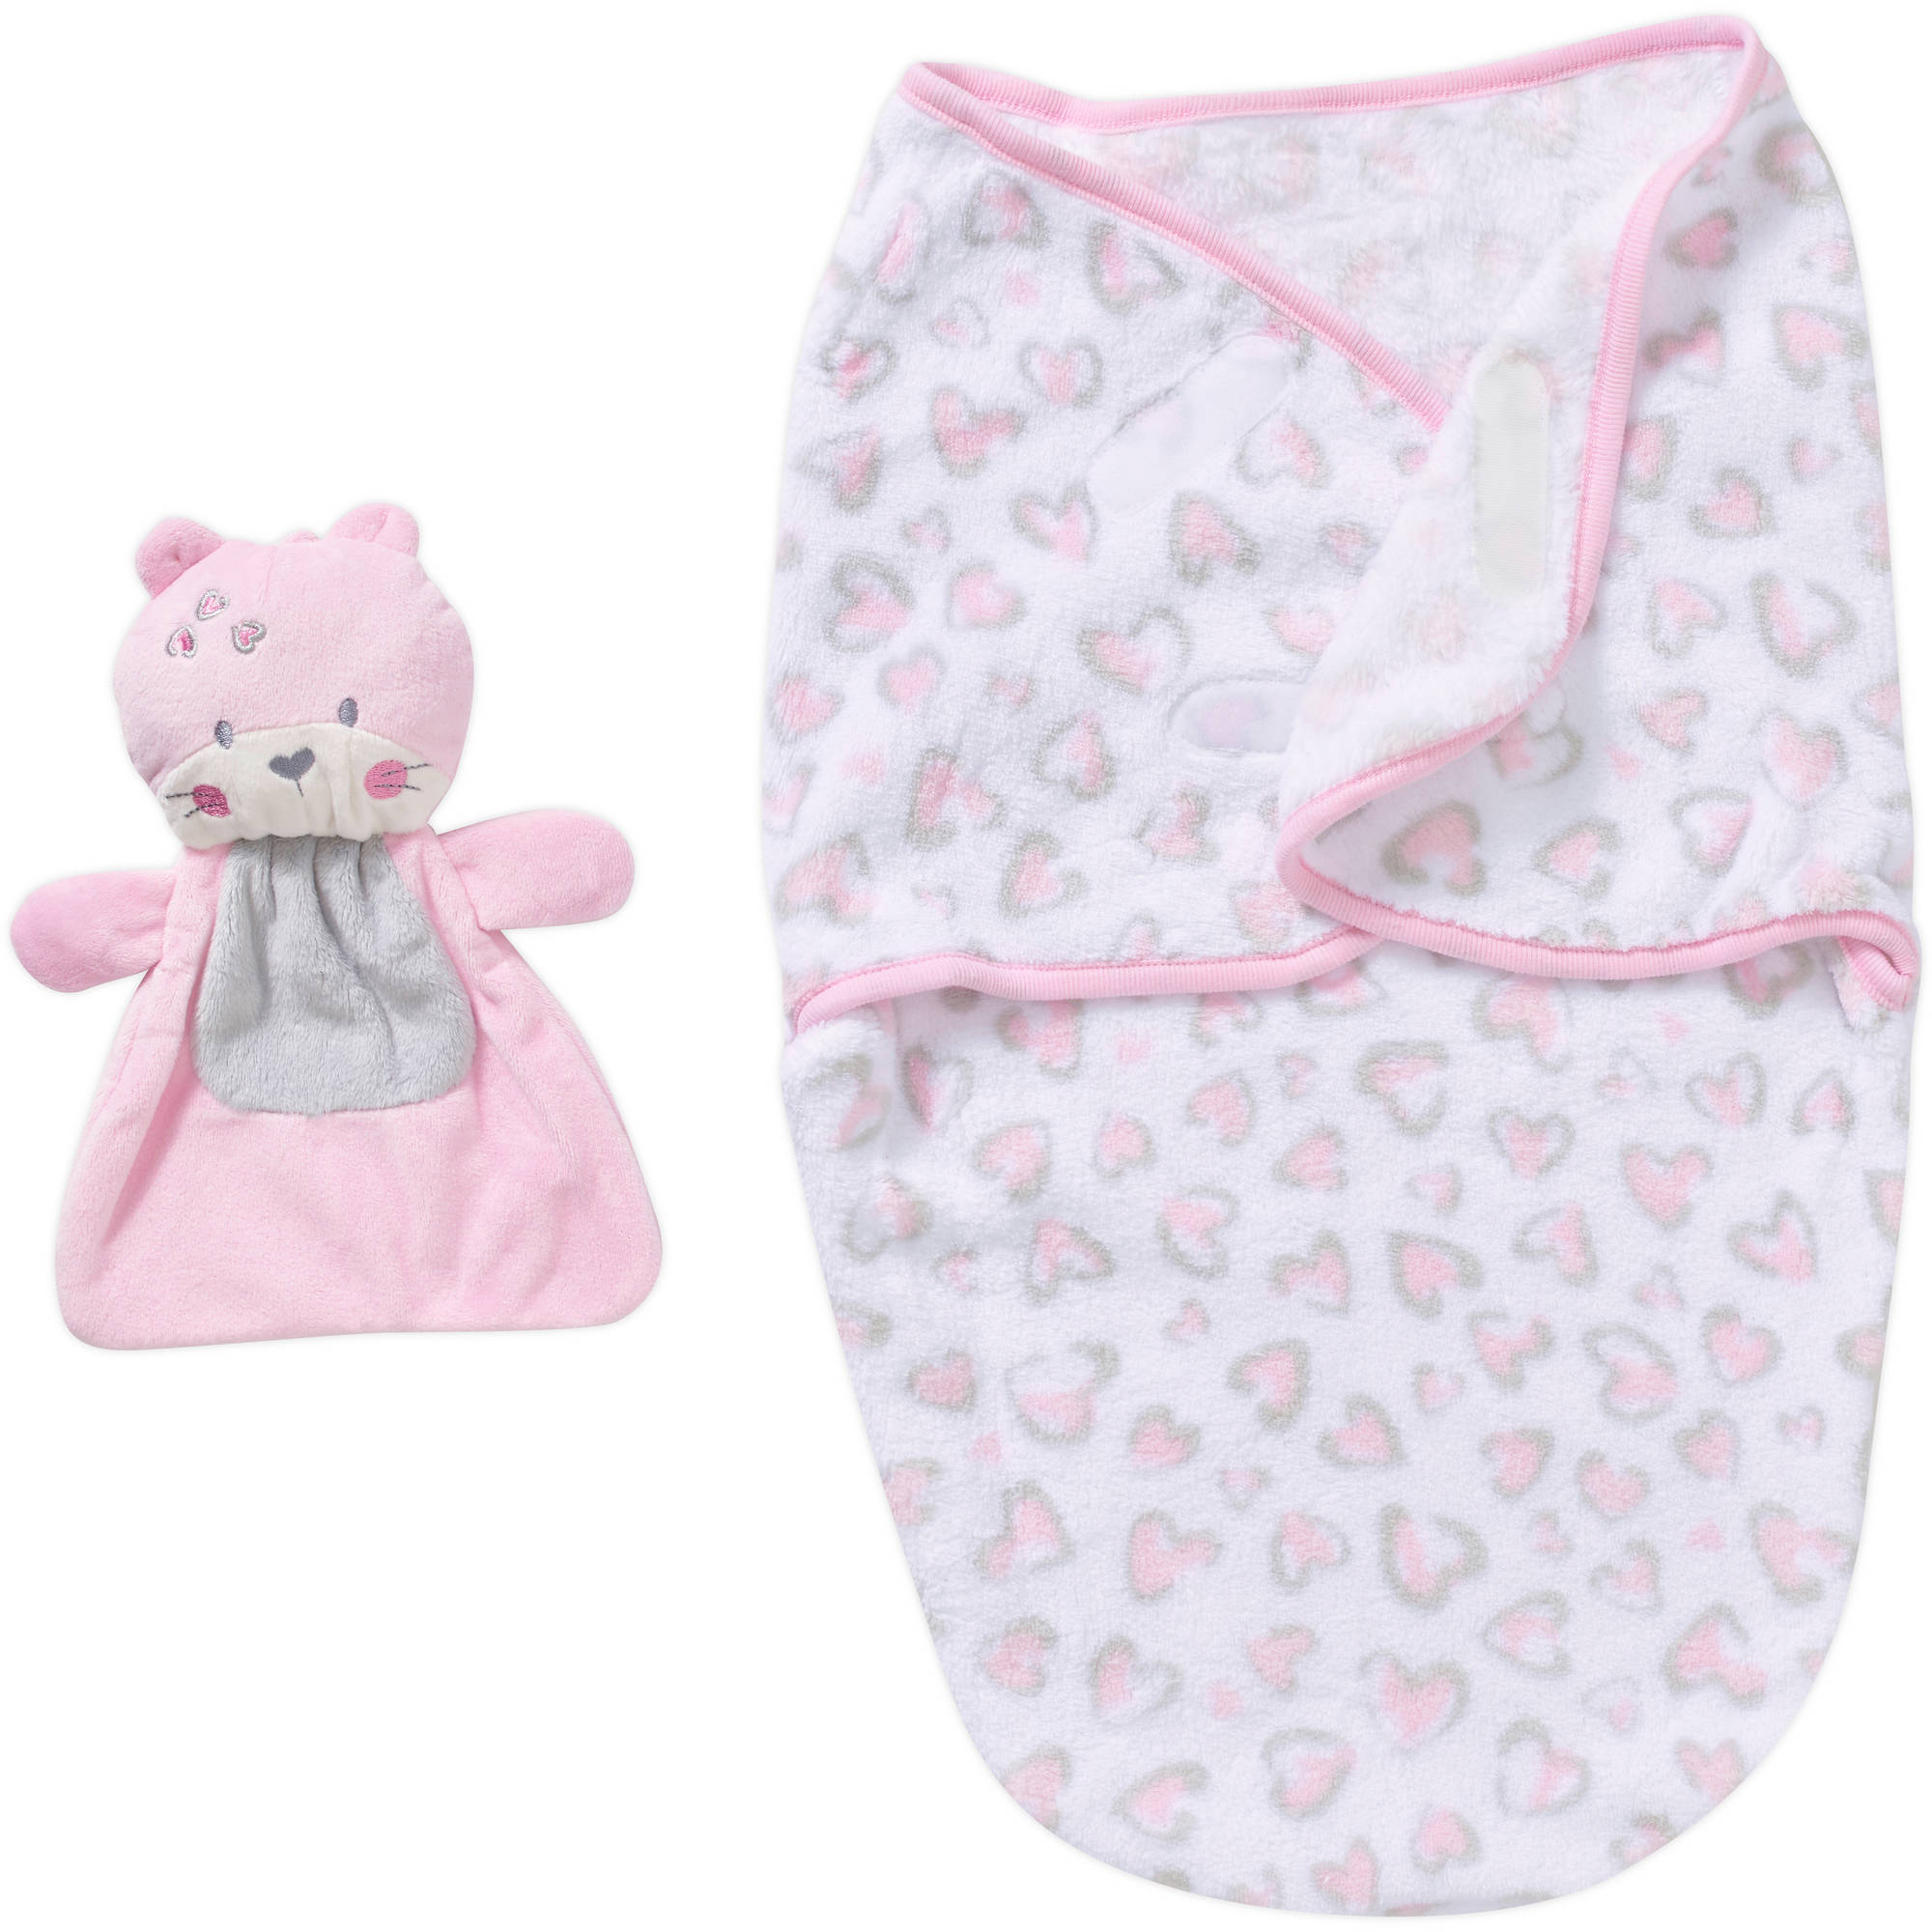 dccb0b61e51e Lovespun Newborn Baby Girl Blanket with Plush Buddy - Walmart.com